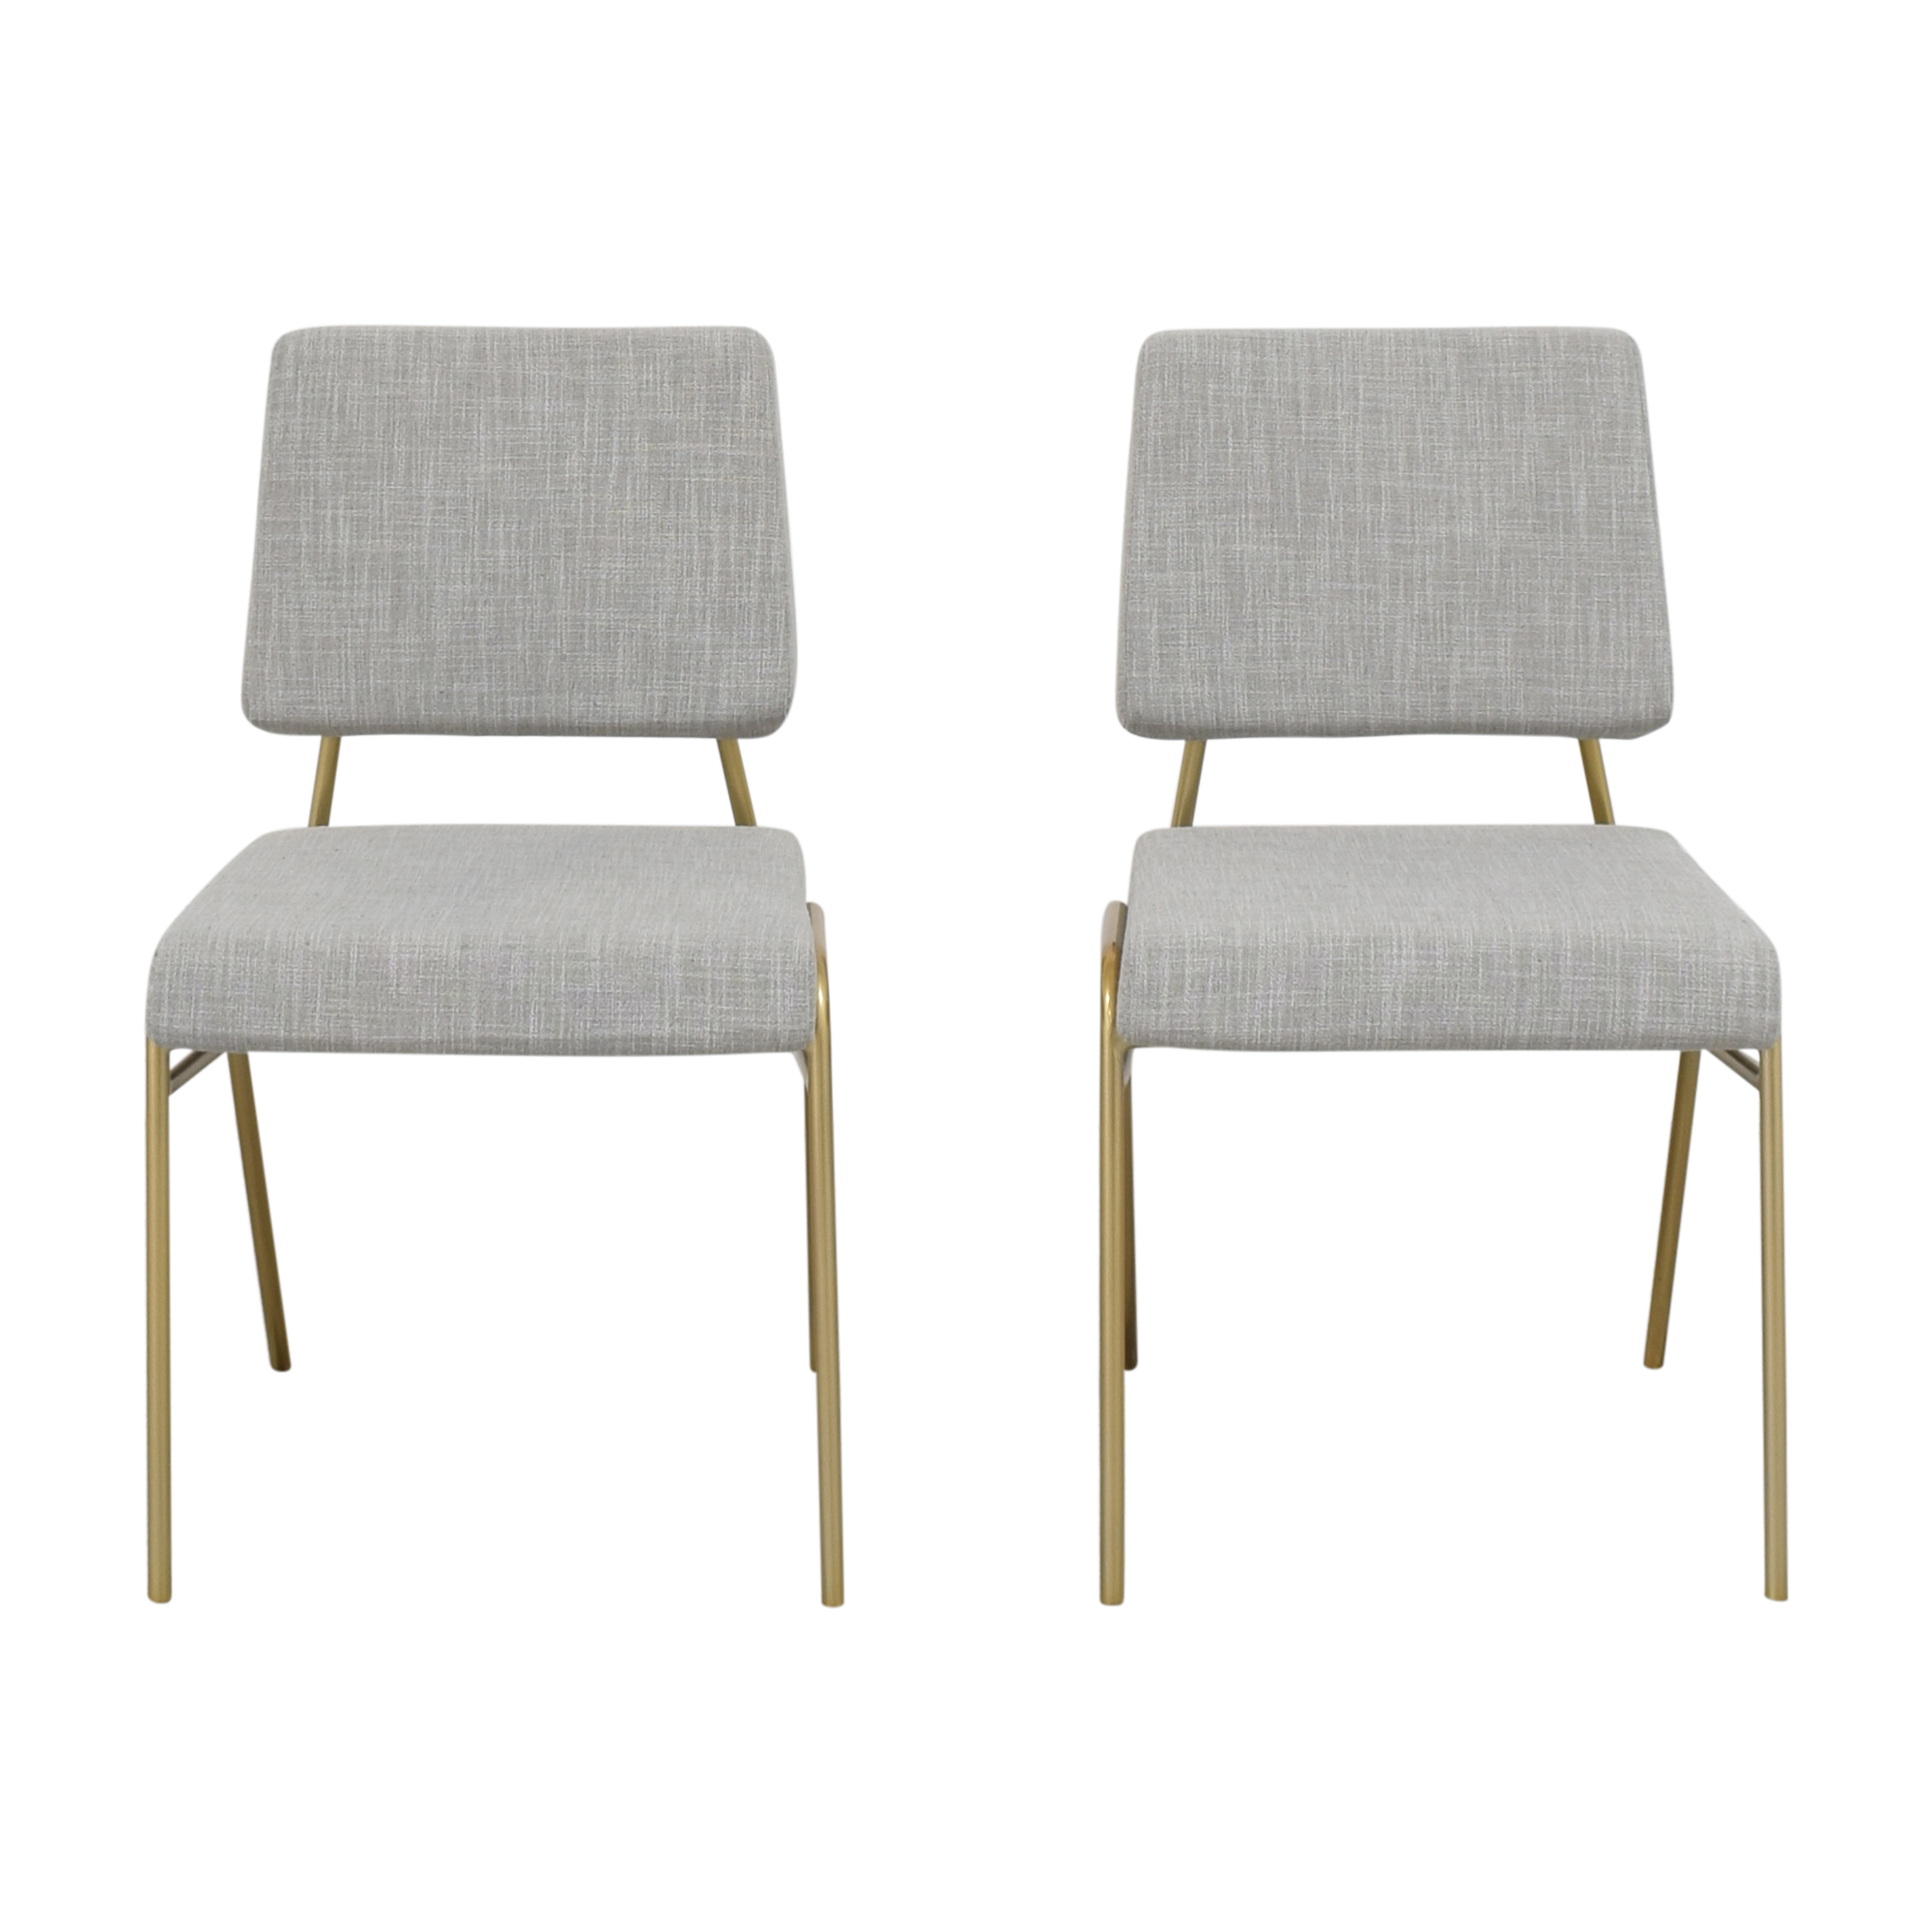 West Elm West Elm Wire Frame Upholstered Dining Chairs price